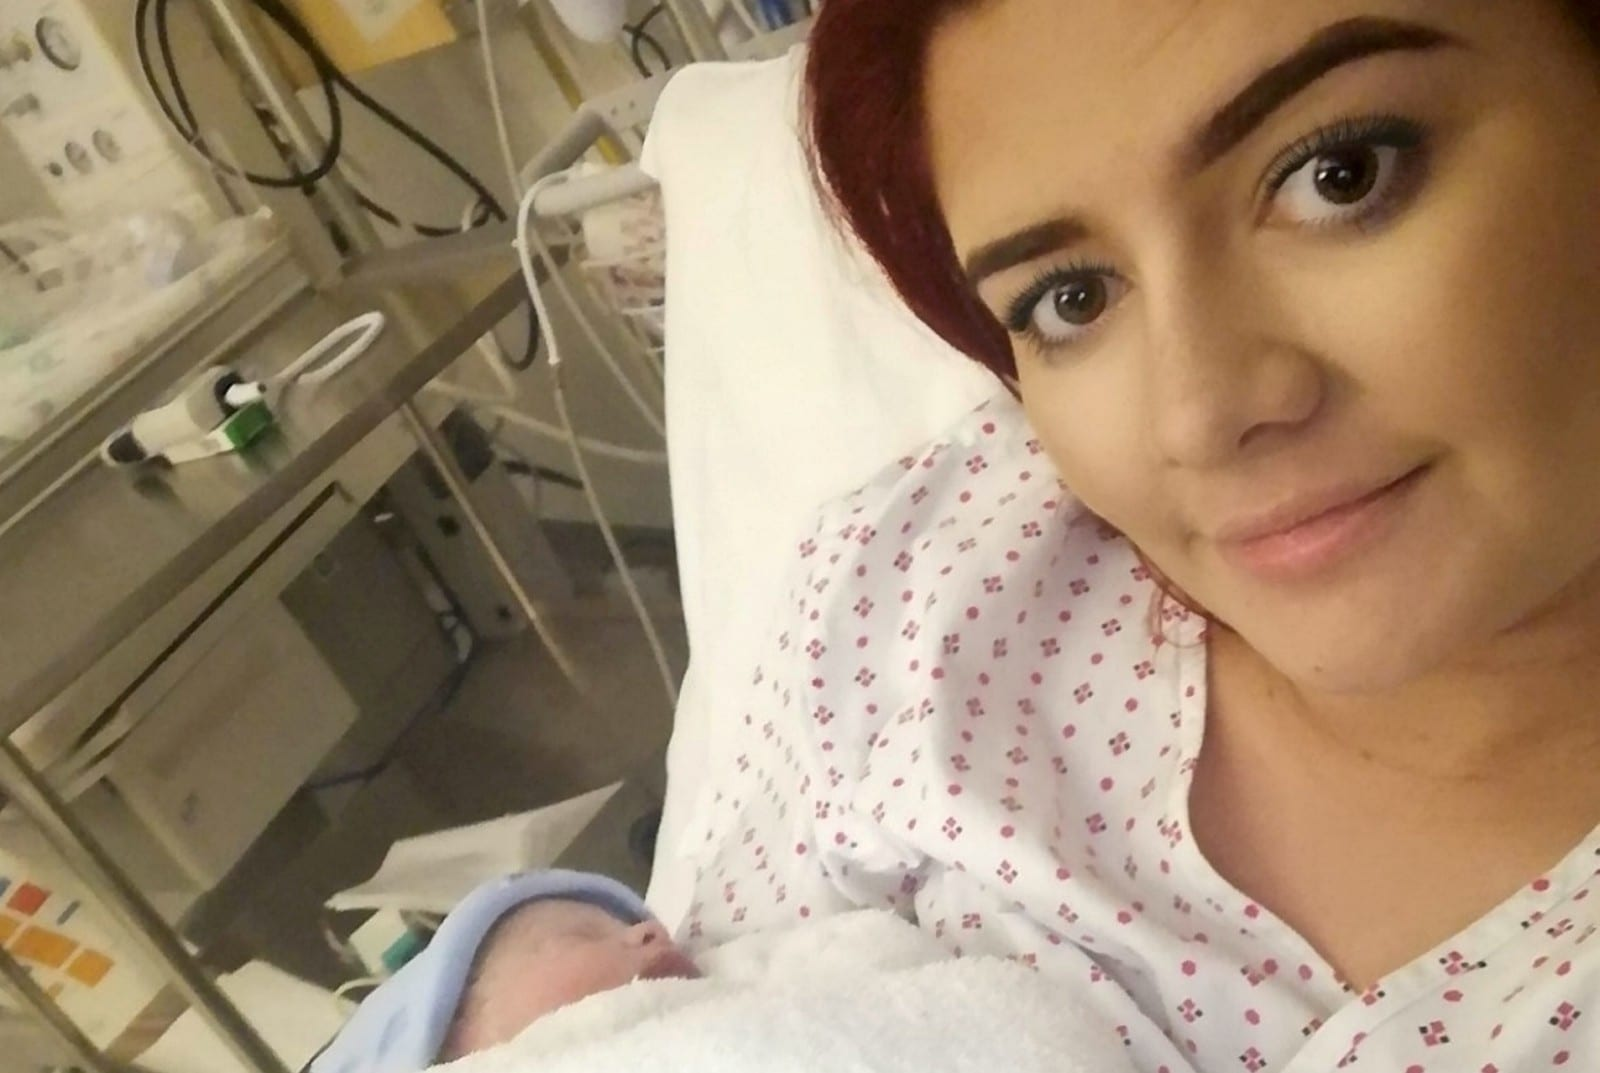 Young Mum Gives Birth To Miracle Boy – Ten Weeks After Her Waters Broke